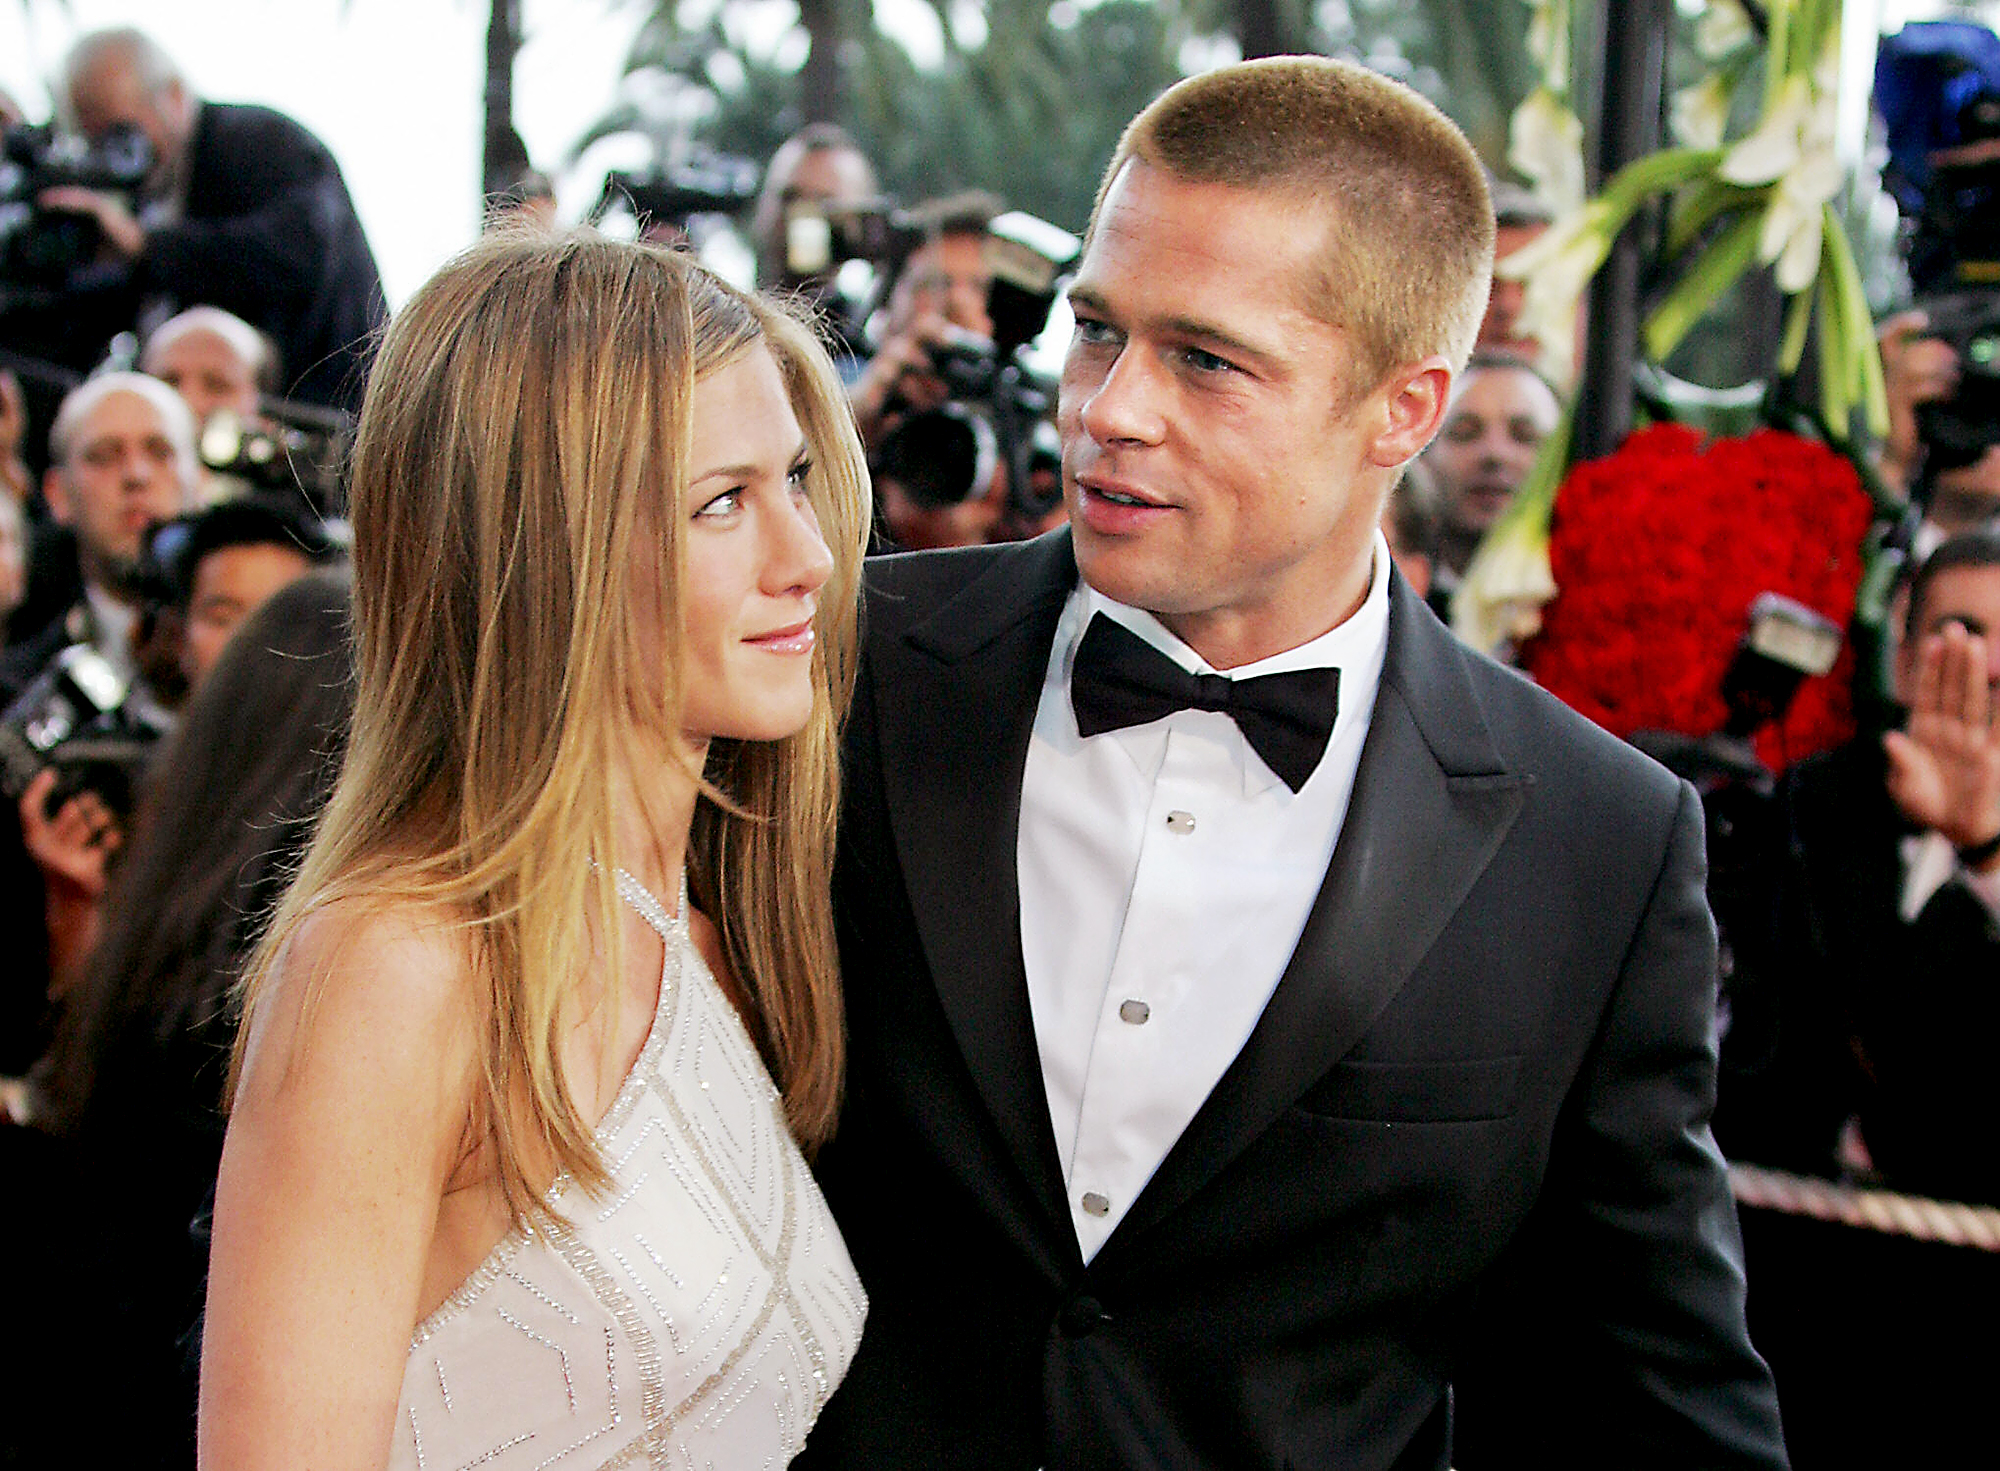 """jennifer-aniston-brad-pitt-divorce-relationship - CANNES, France: US actor Brad Pitt (C) waves as he and his wife Jennifer Aniston (R) arrive for the official projection of US director Wolfgang Petersen's (L) film """"Troy"""" , 13 May 2004, at the 57th Cannes Film Festival in the French Riviera town. Hollywood took over the French Riviera today as Brad Pitt and […]"""